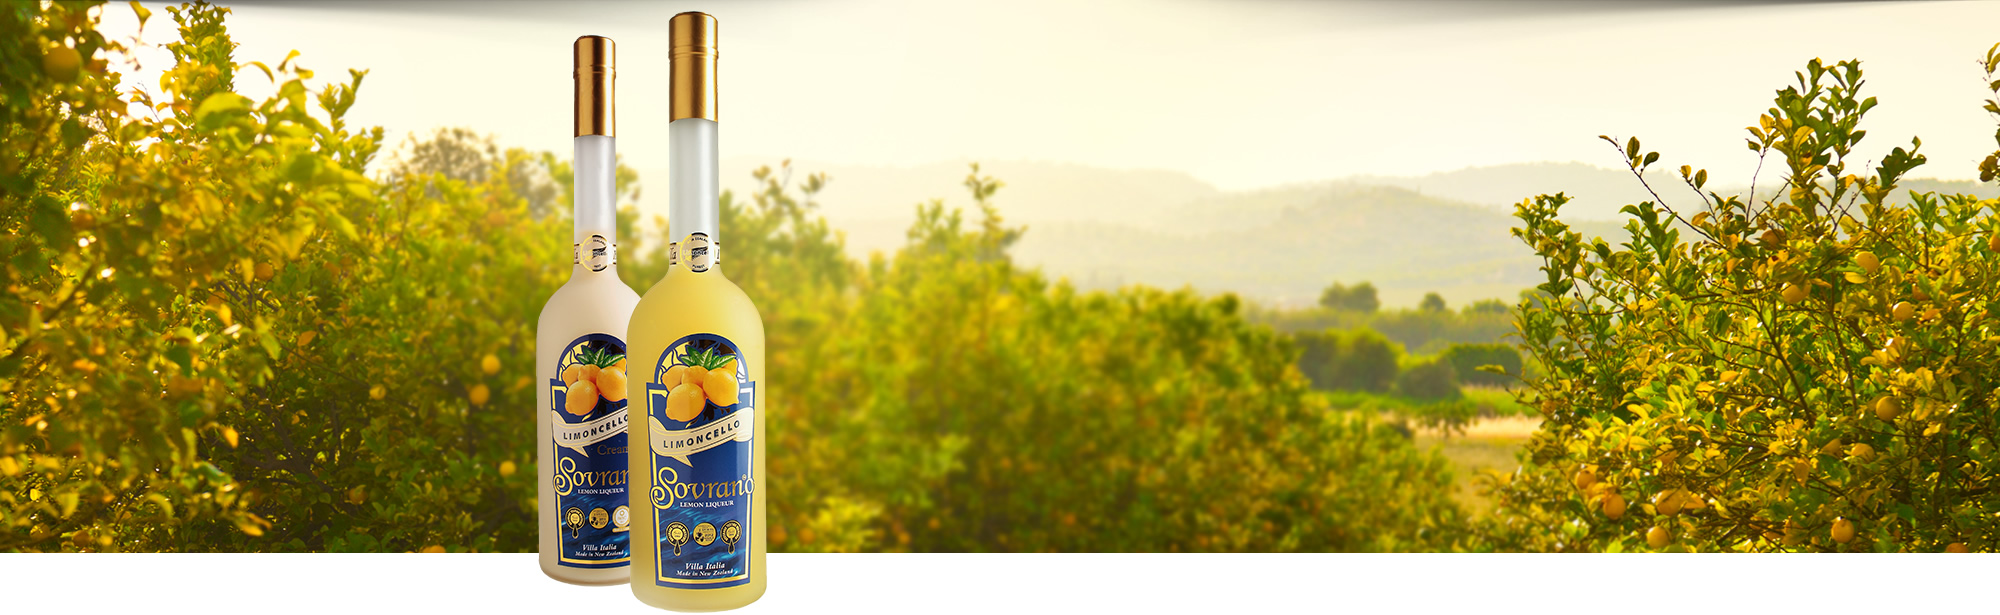 multi award winning limoncello recipes